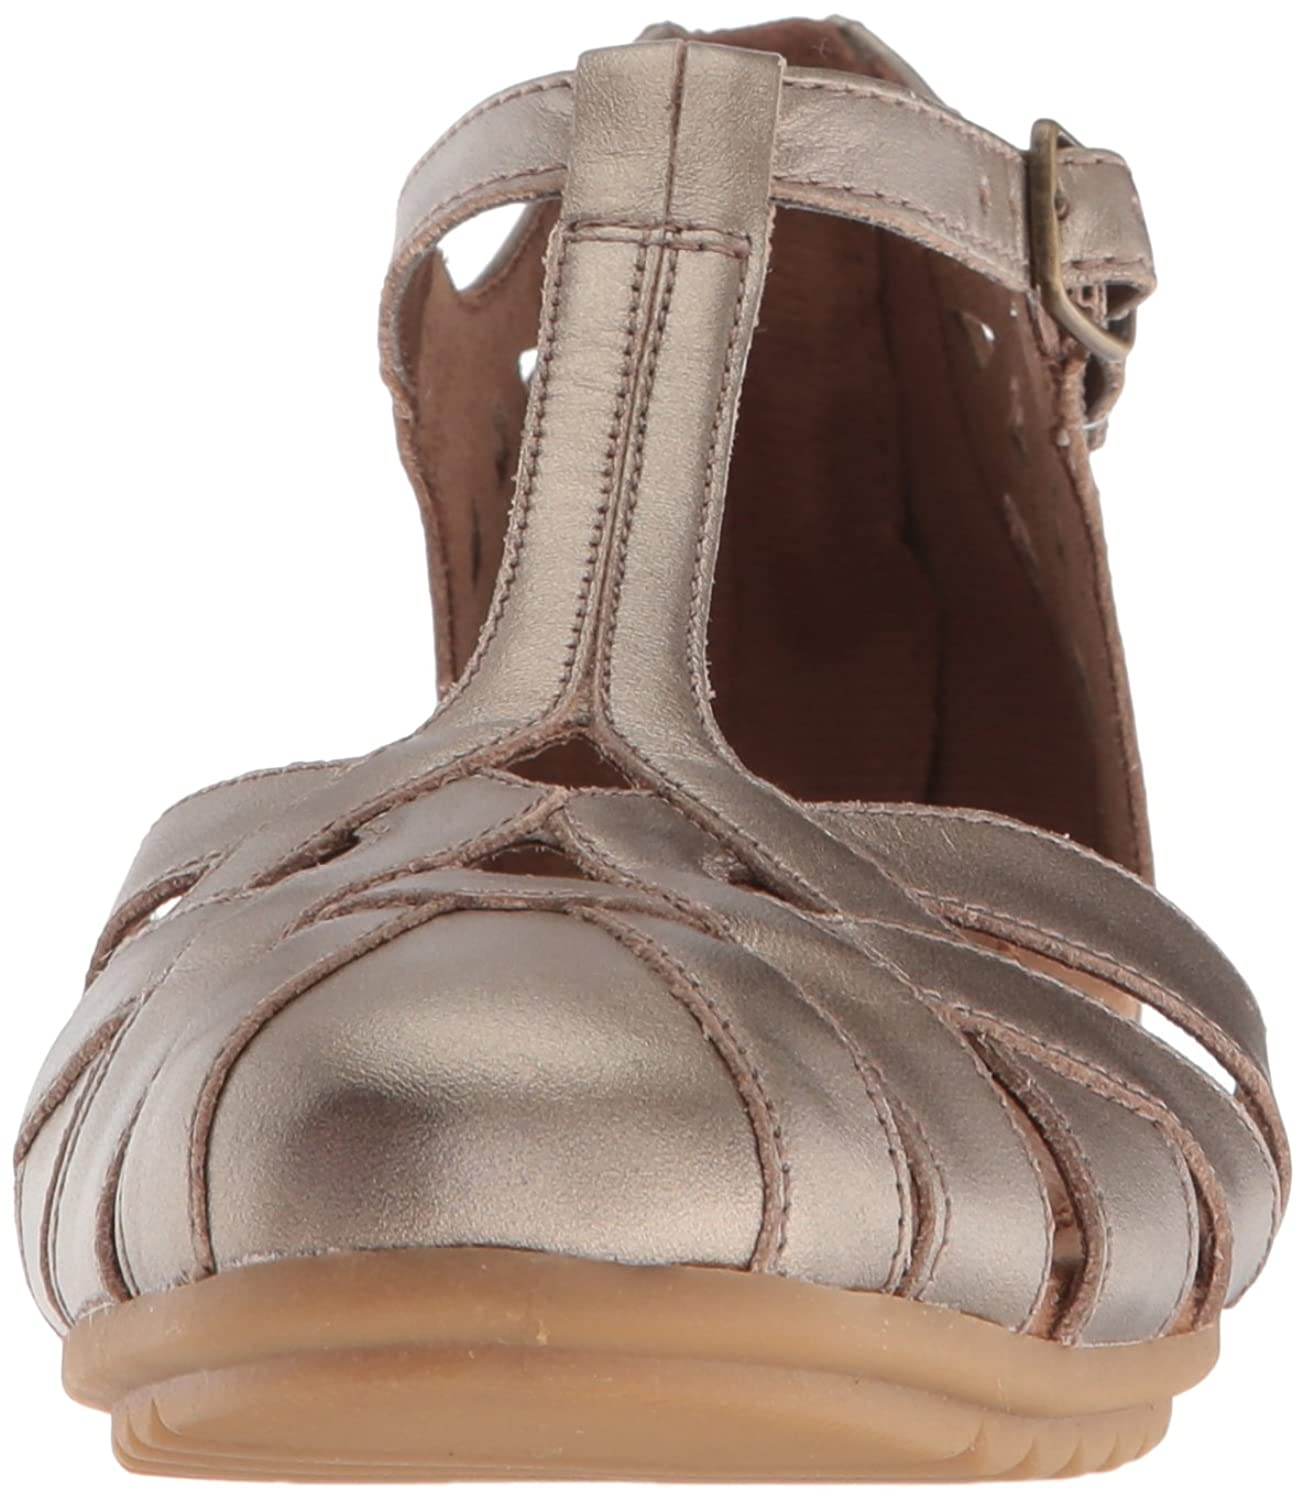 rockport shoes used in she was pretty casts for your foot 958185